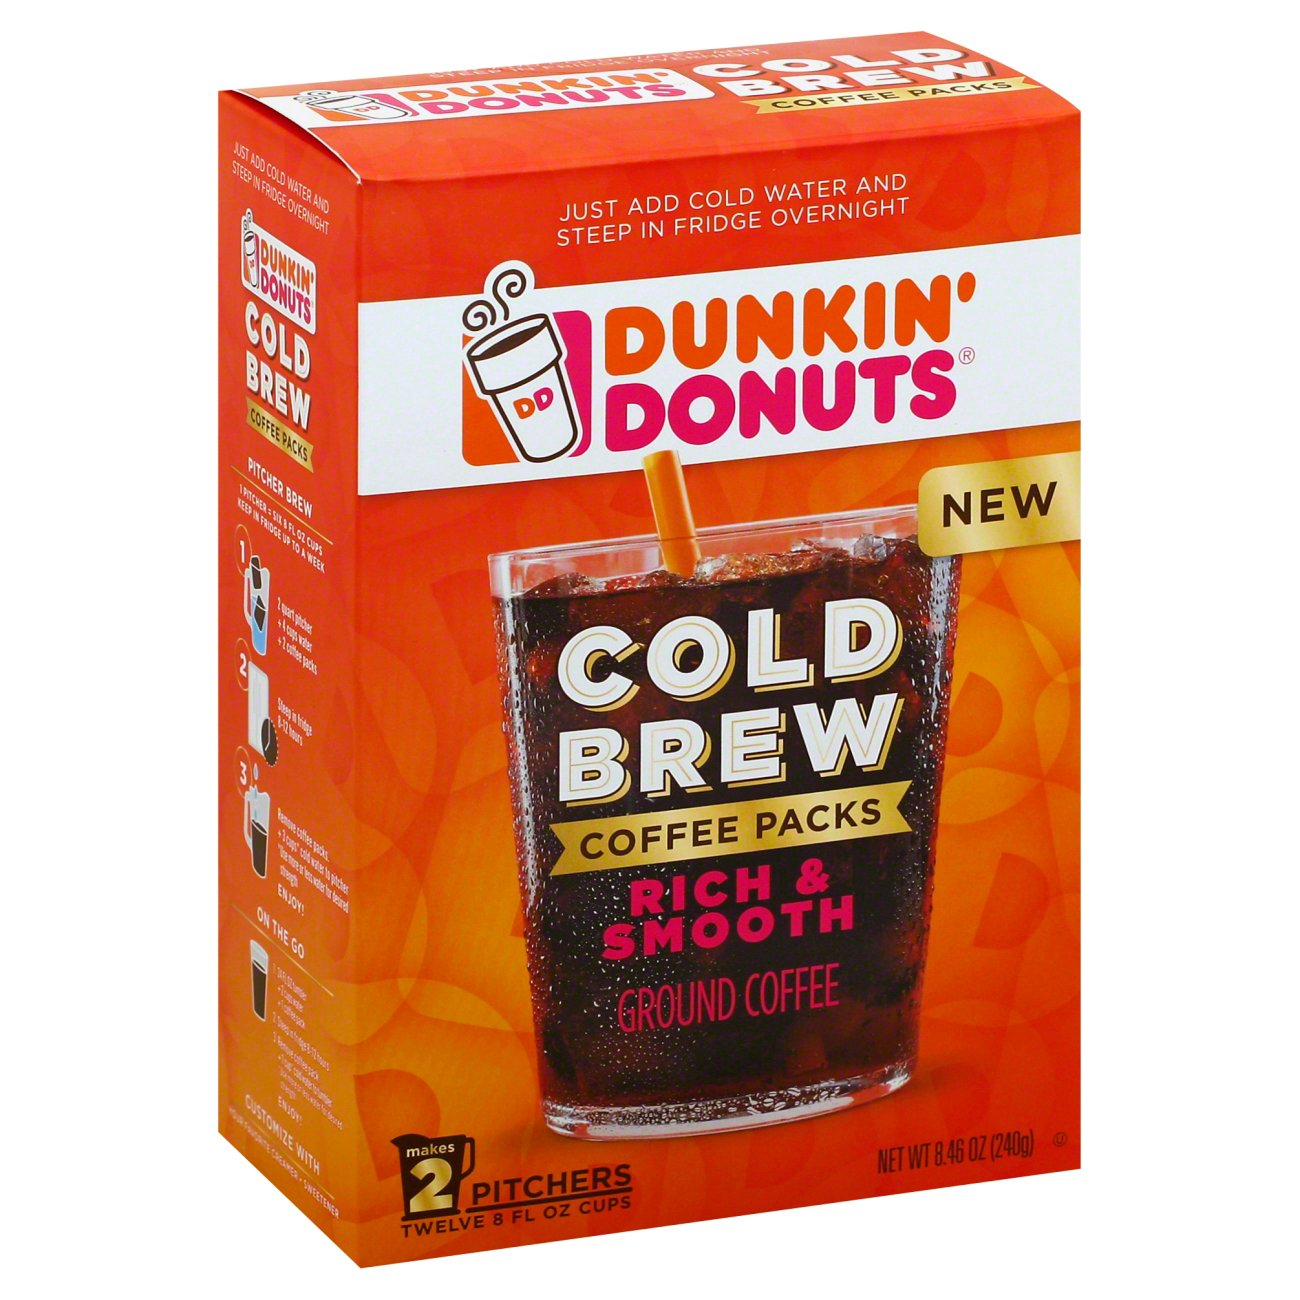 Dunkin' Donuts Cold Brew Coffee - Shop Coffee at H-E-B